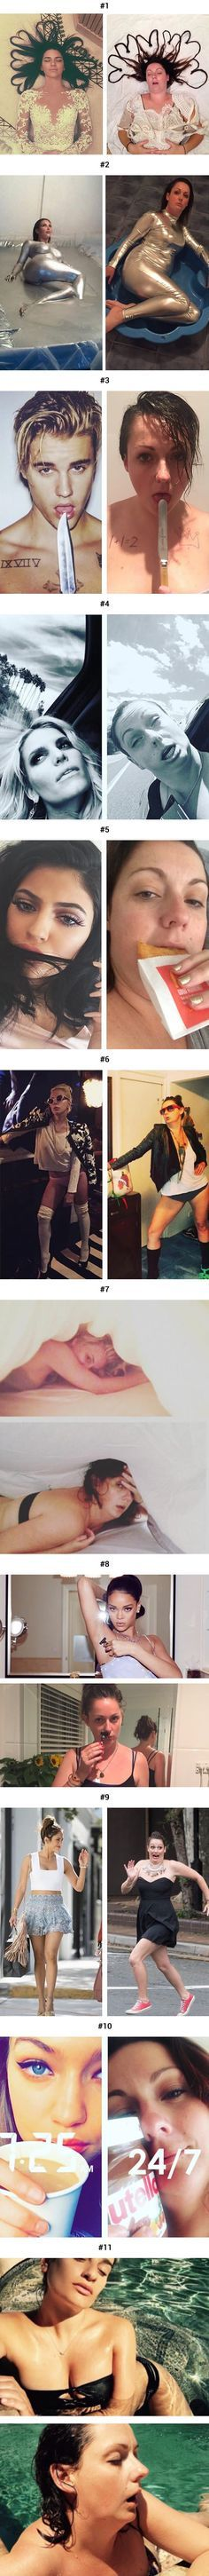 I want to be her friend! Woman mocks celebs insta feed